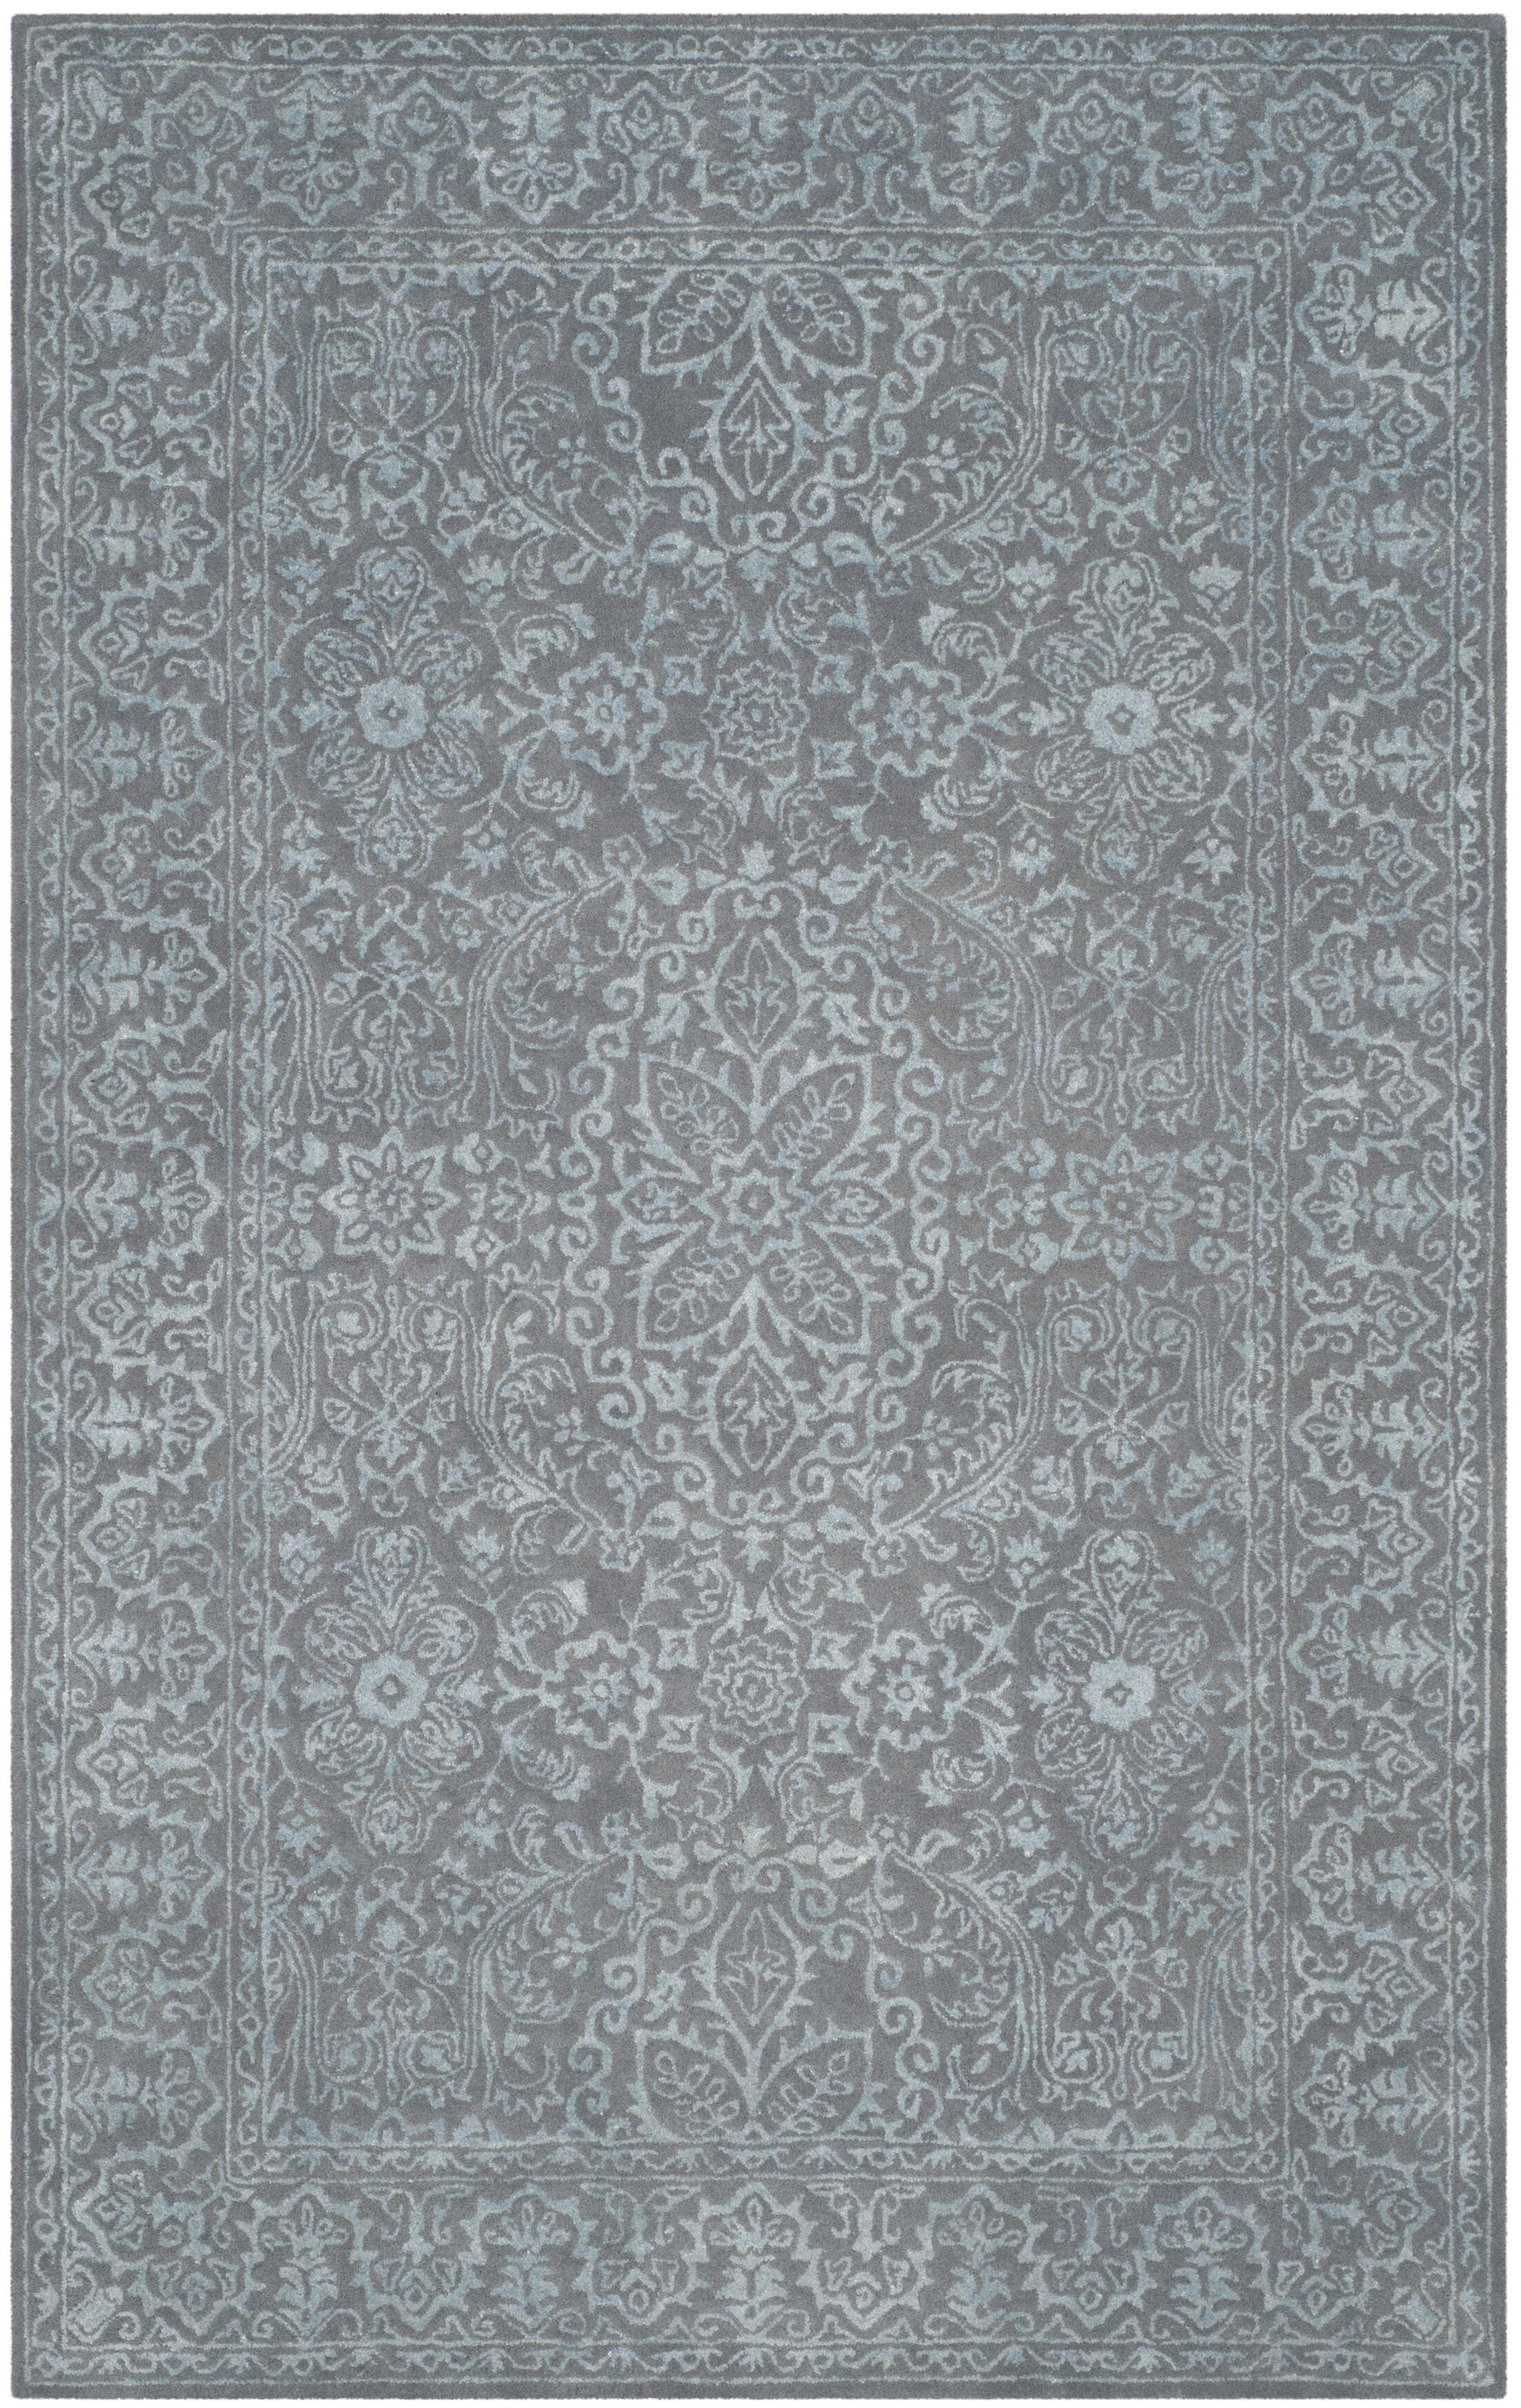 Wilkins Hand-Tufted Opal/Gray Area Rug Rug Size: Rectangle 3' x 5'